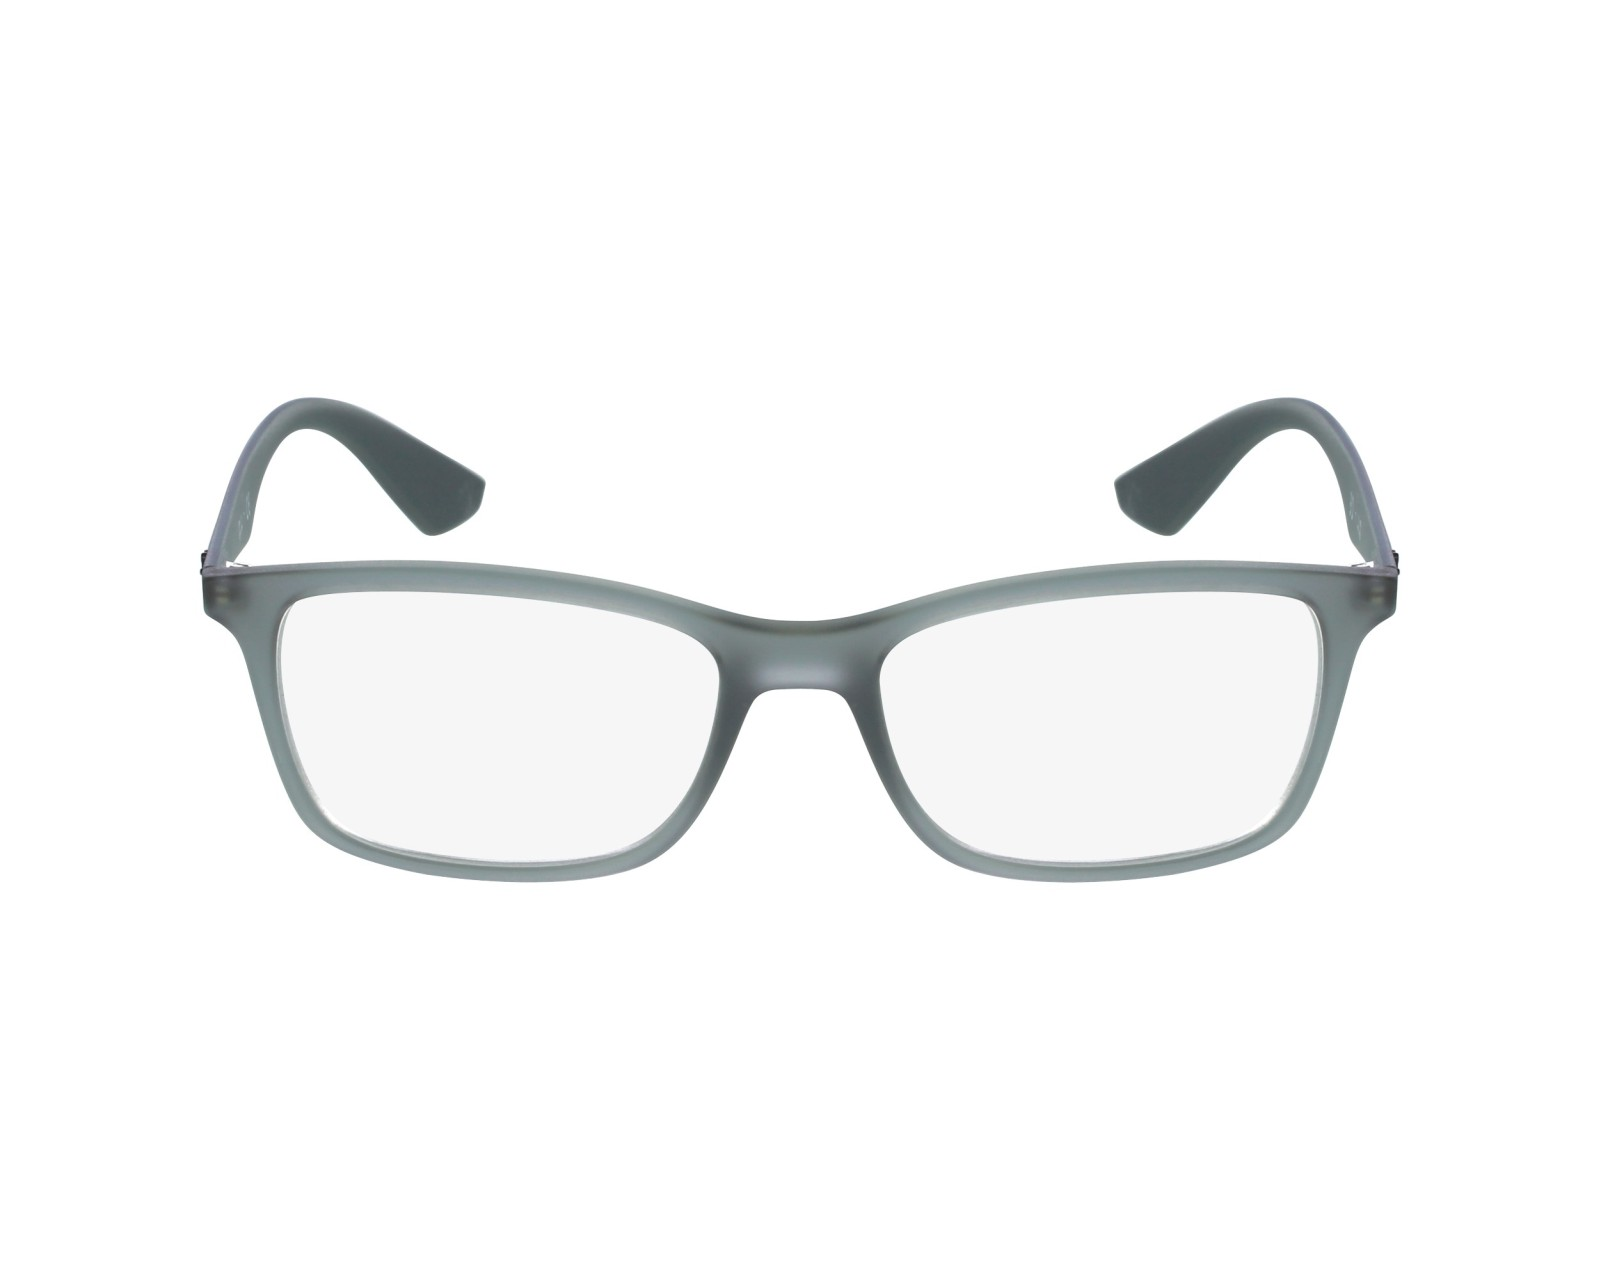 66e4b51615 eyeglasses Ray-Ban RX-7047 5482 54-17 Grey profile view